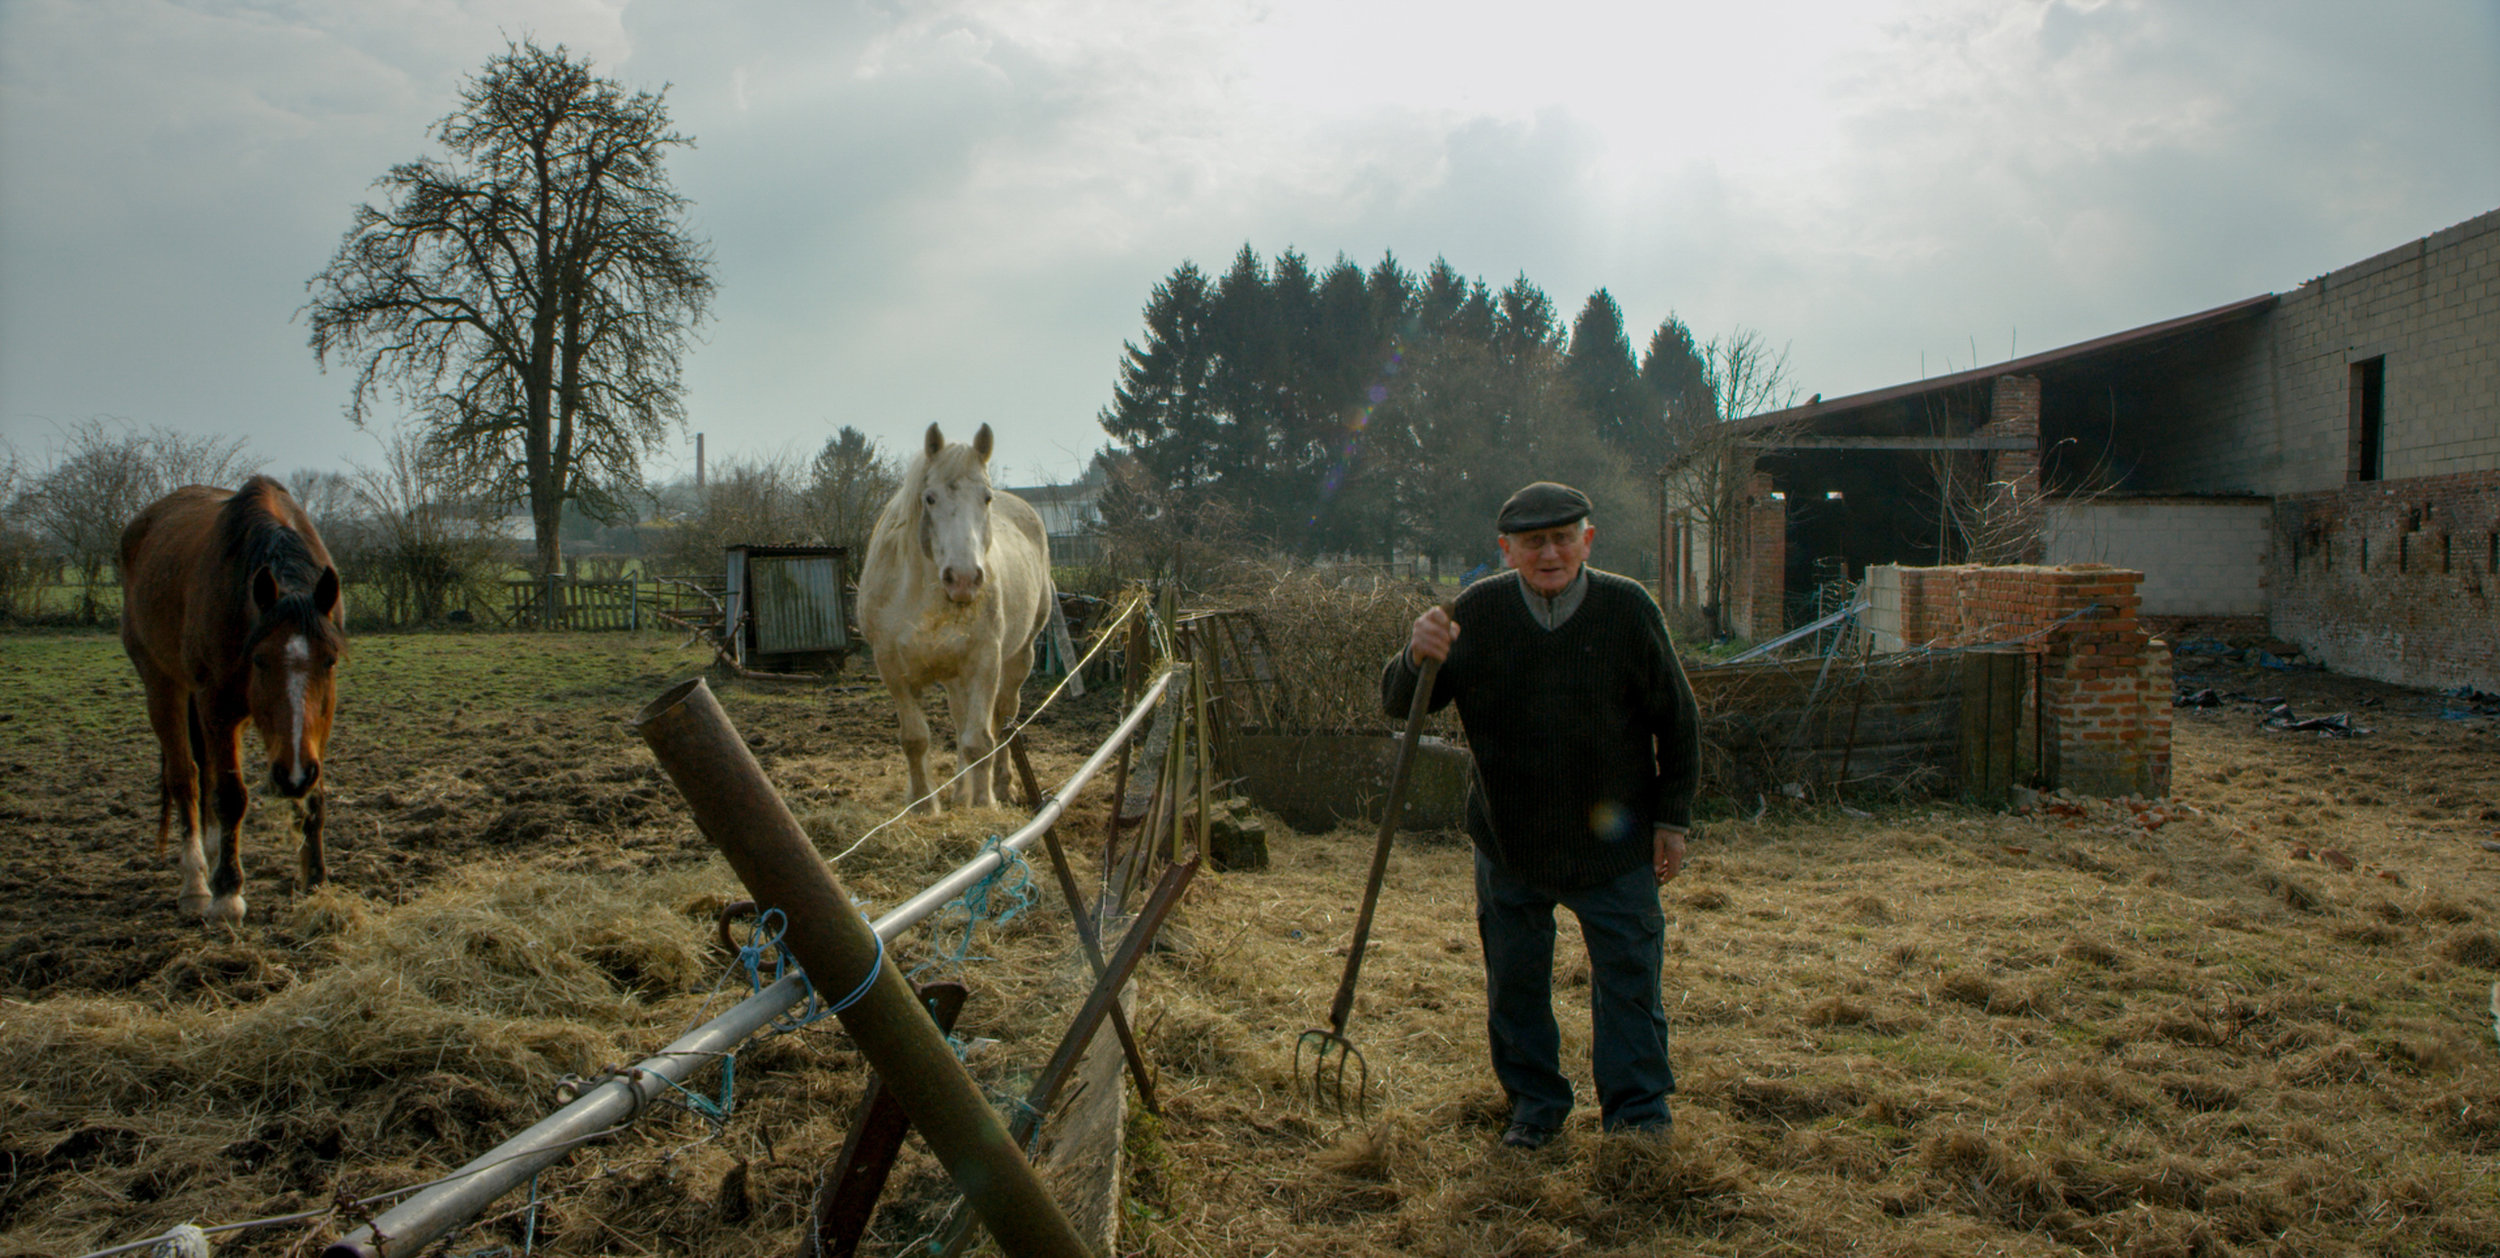 Roger, the oldest man of the village where Excess Will Save Us takes place, feeding the animals of his farm